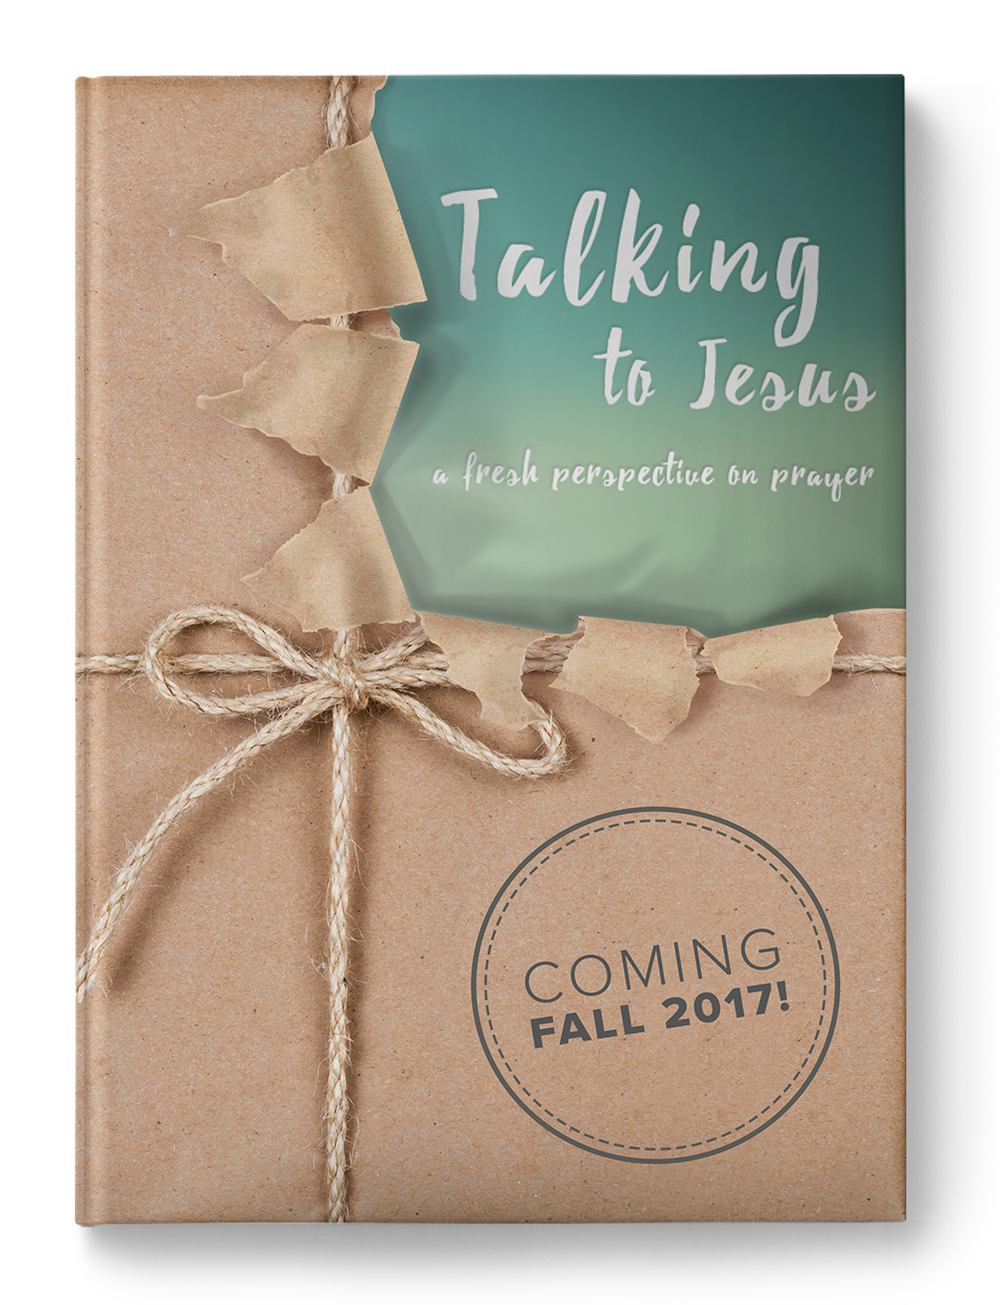 Talking to JesusInvites you on a journey to experience the dialogues people had with Jesus in the Bible. Using storytelling and applying these encounters to life today, you'll discover a fresh perspective on how to pray. This book also offers practical tips on prayer, and will encourage you to enhance your own personal prayer life and experience an ever-growing, more authentic relationship with Jesus who knows and hears you. Coming soon....